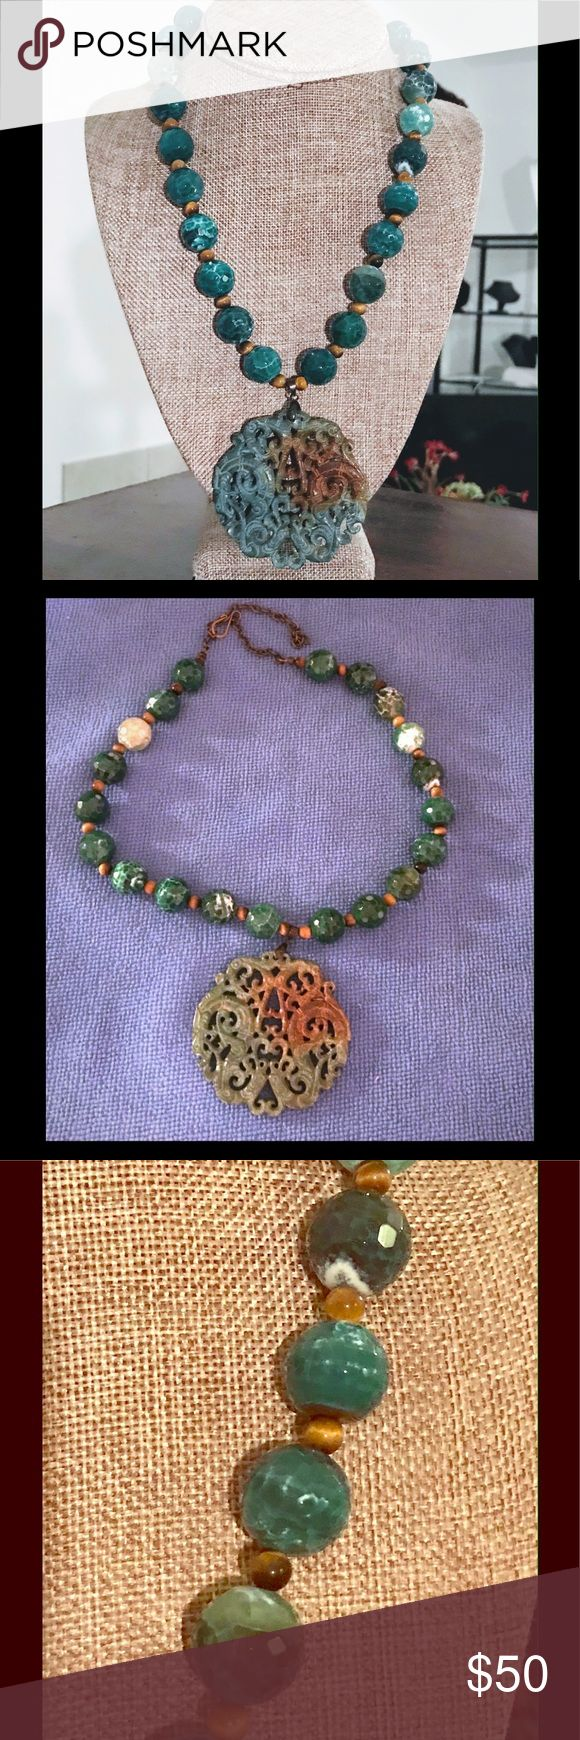 """Green Agate Necklace Green faceted agate beads separated with tiger eye beads with suspended carved pendant with 4"""" bronze extender chain and """"s"""" hook closure. Necklace 23.5"""" Pendant 2.5"""" jewelrybyanneg Jewelry Necklaces"""